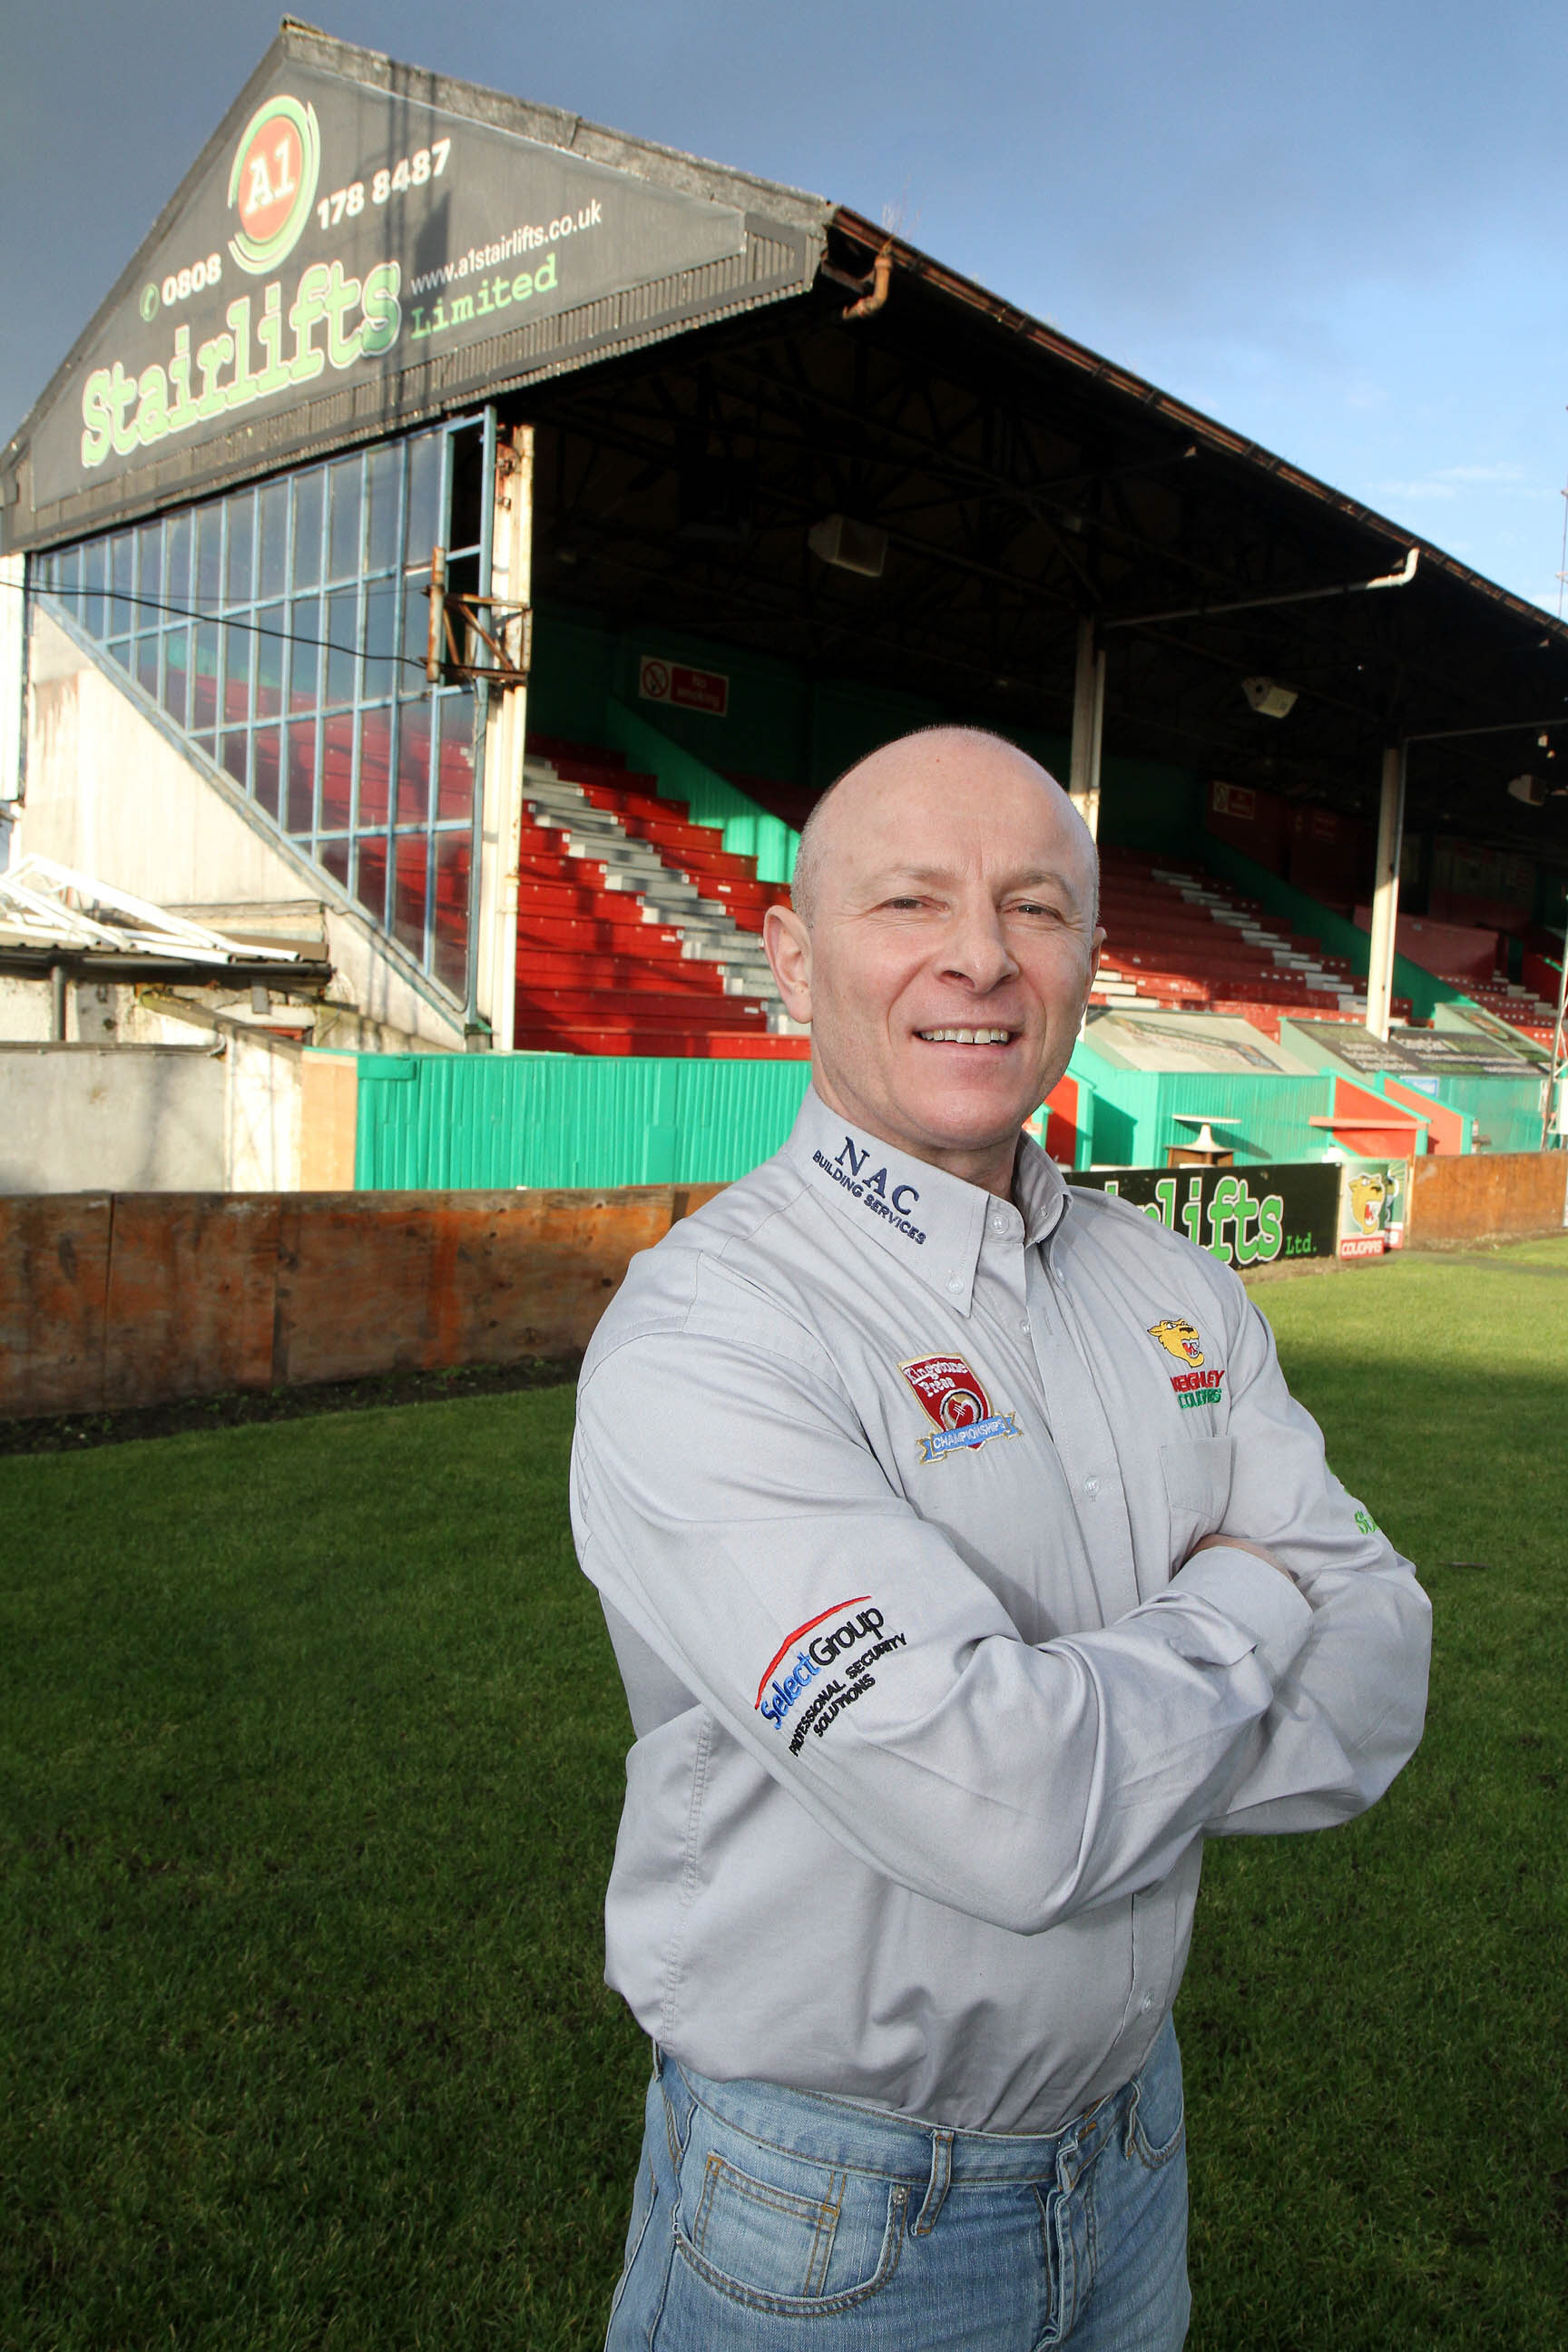 Gary Fawcett is leaving his role as Keighley Cougars chairman